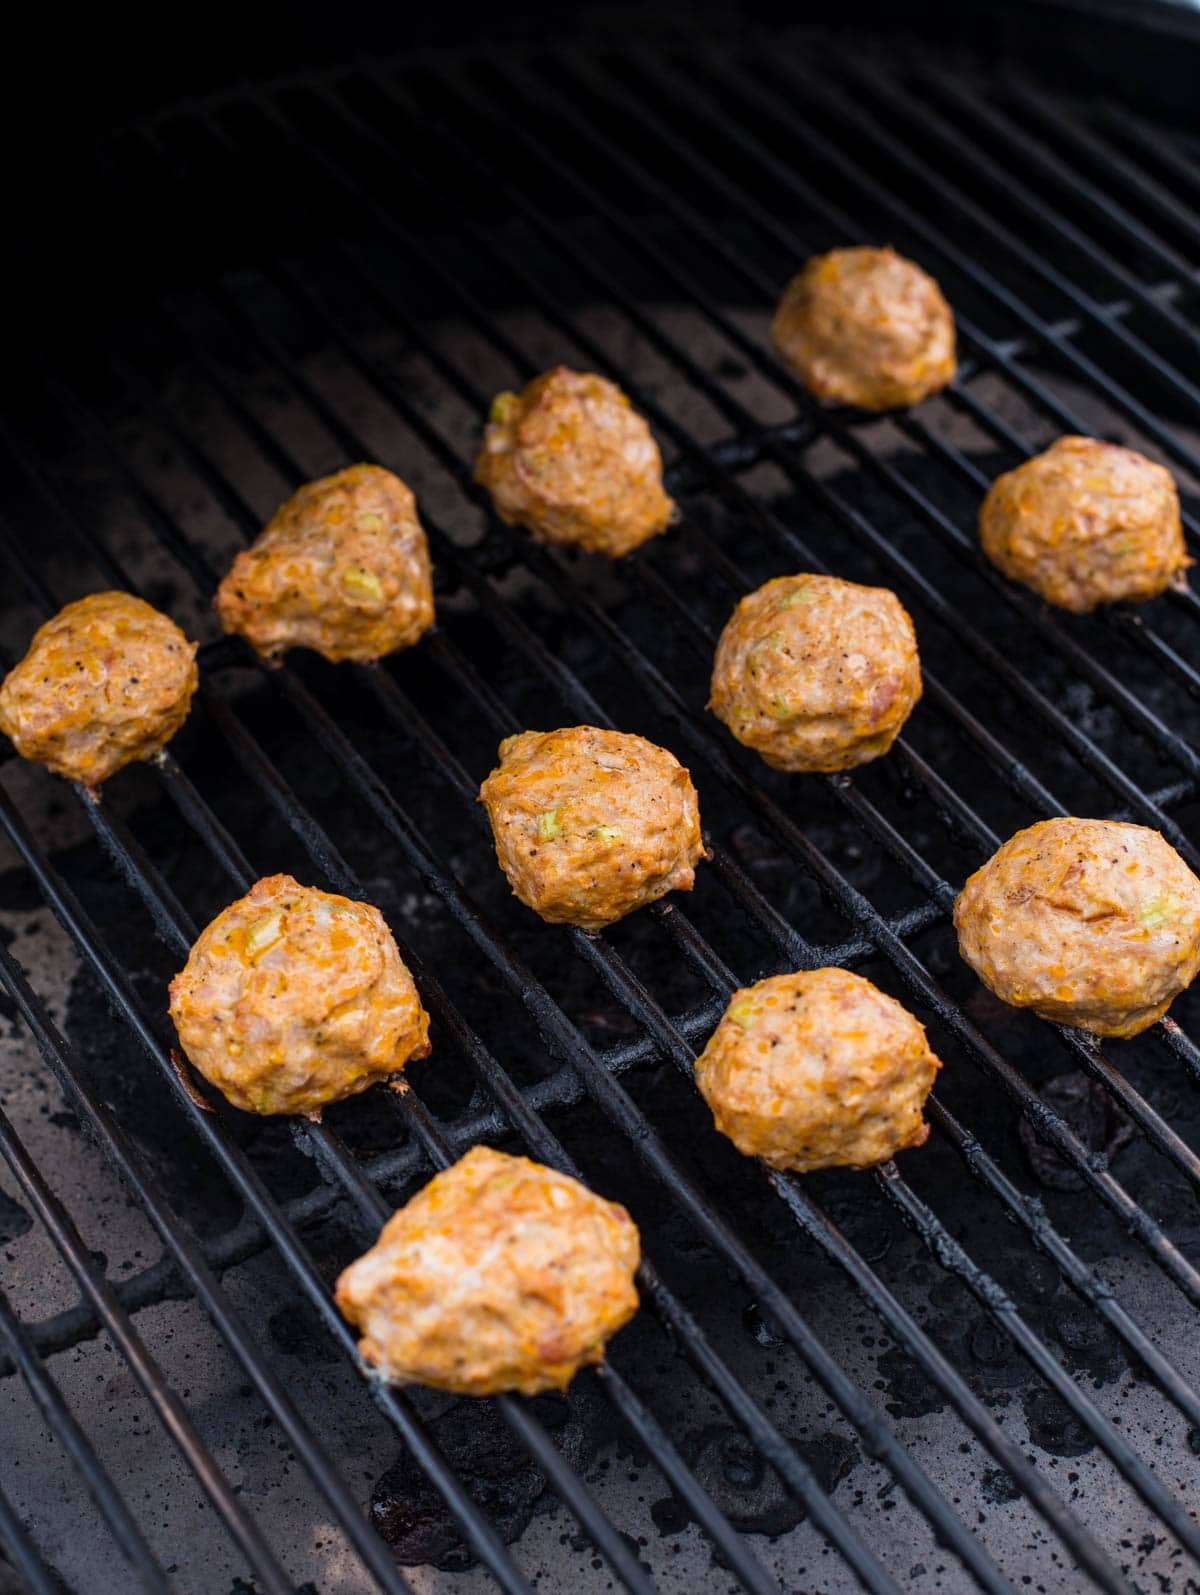 12 Meatballs cooking on a grill